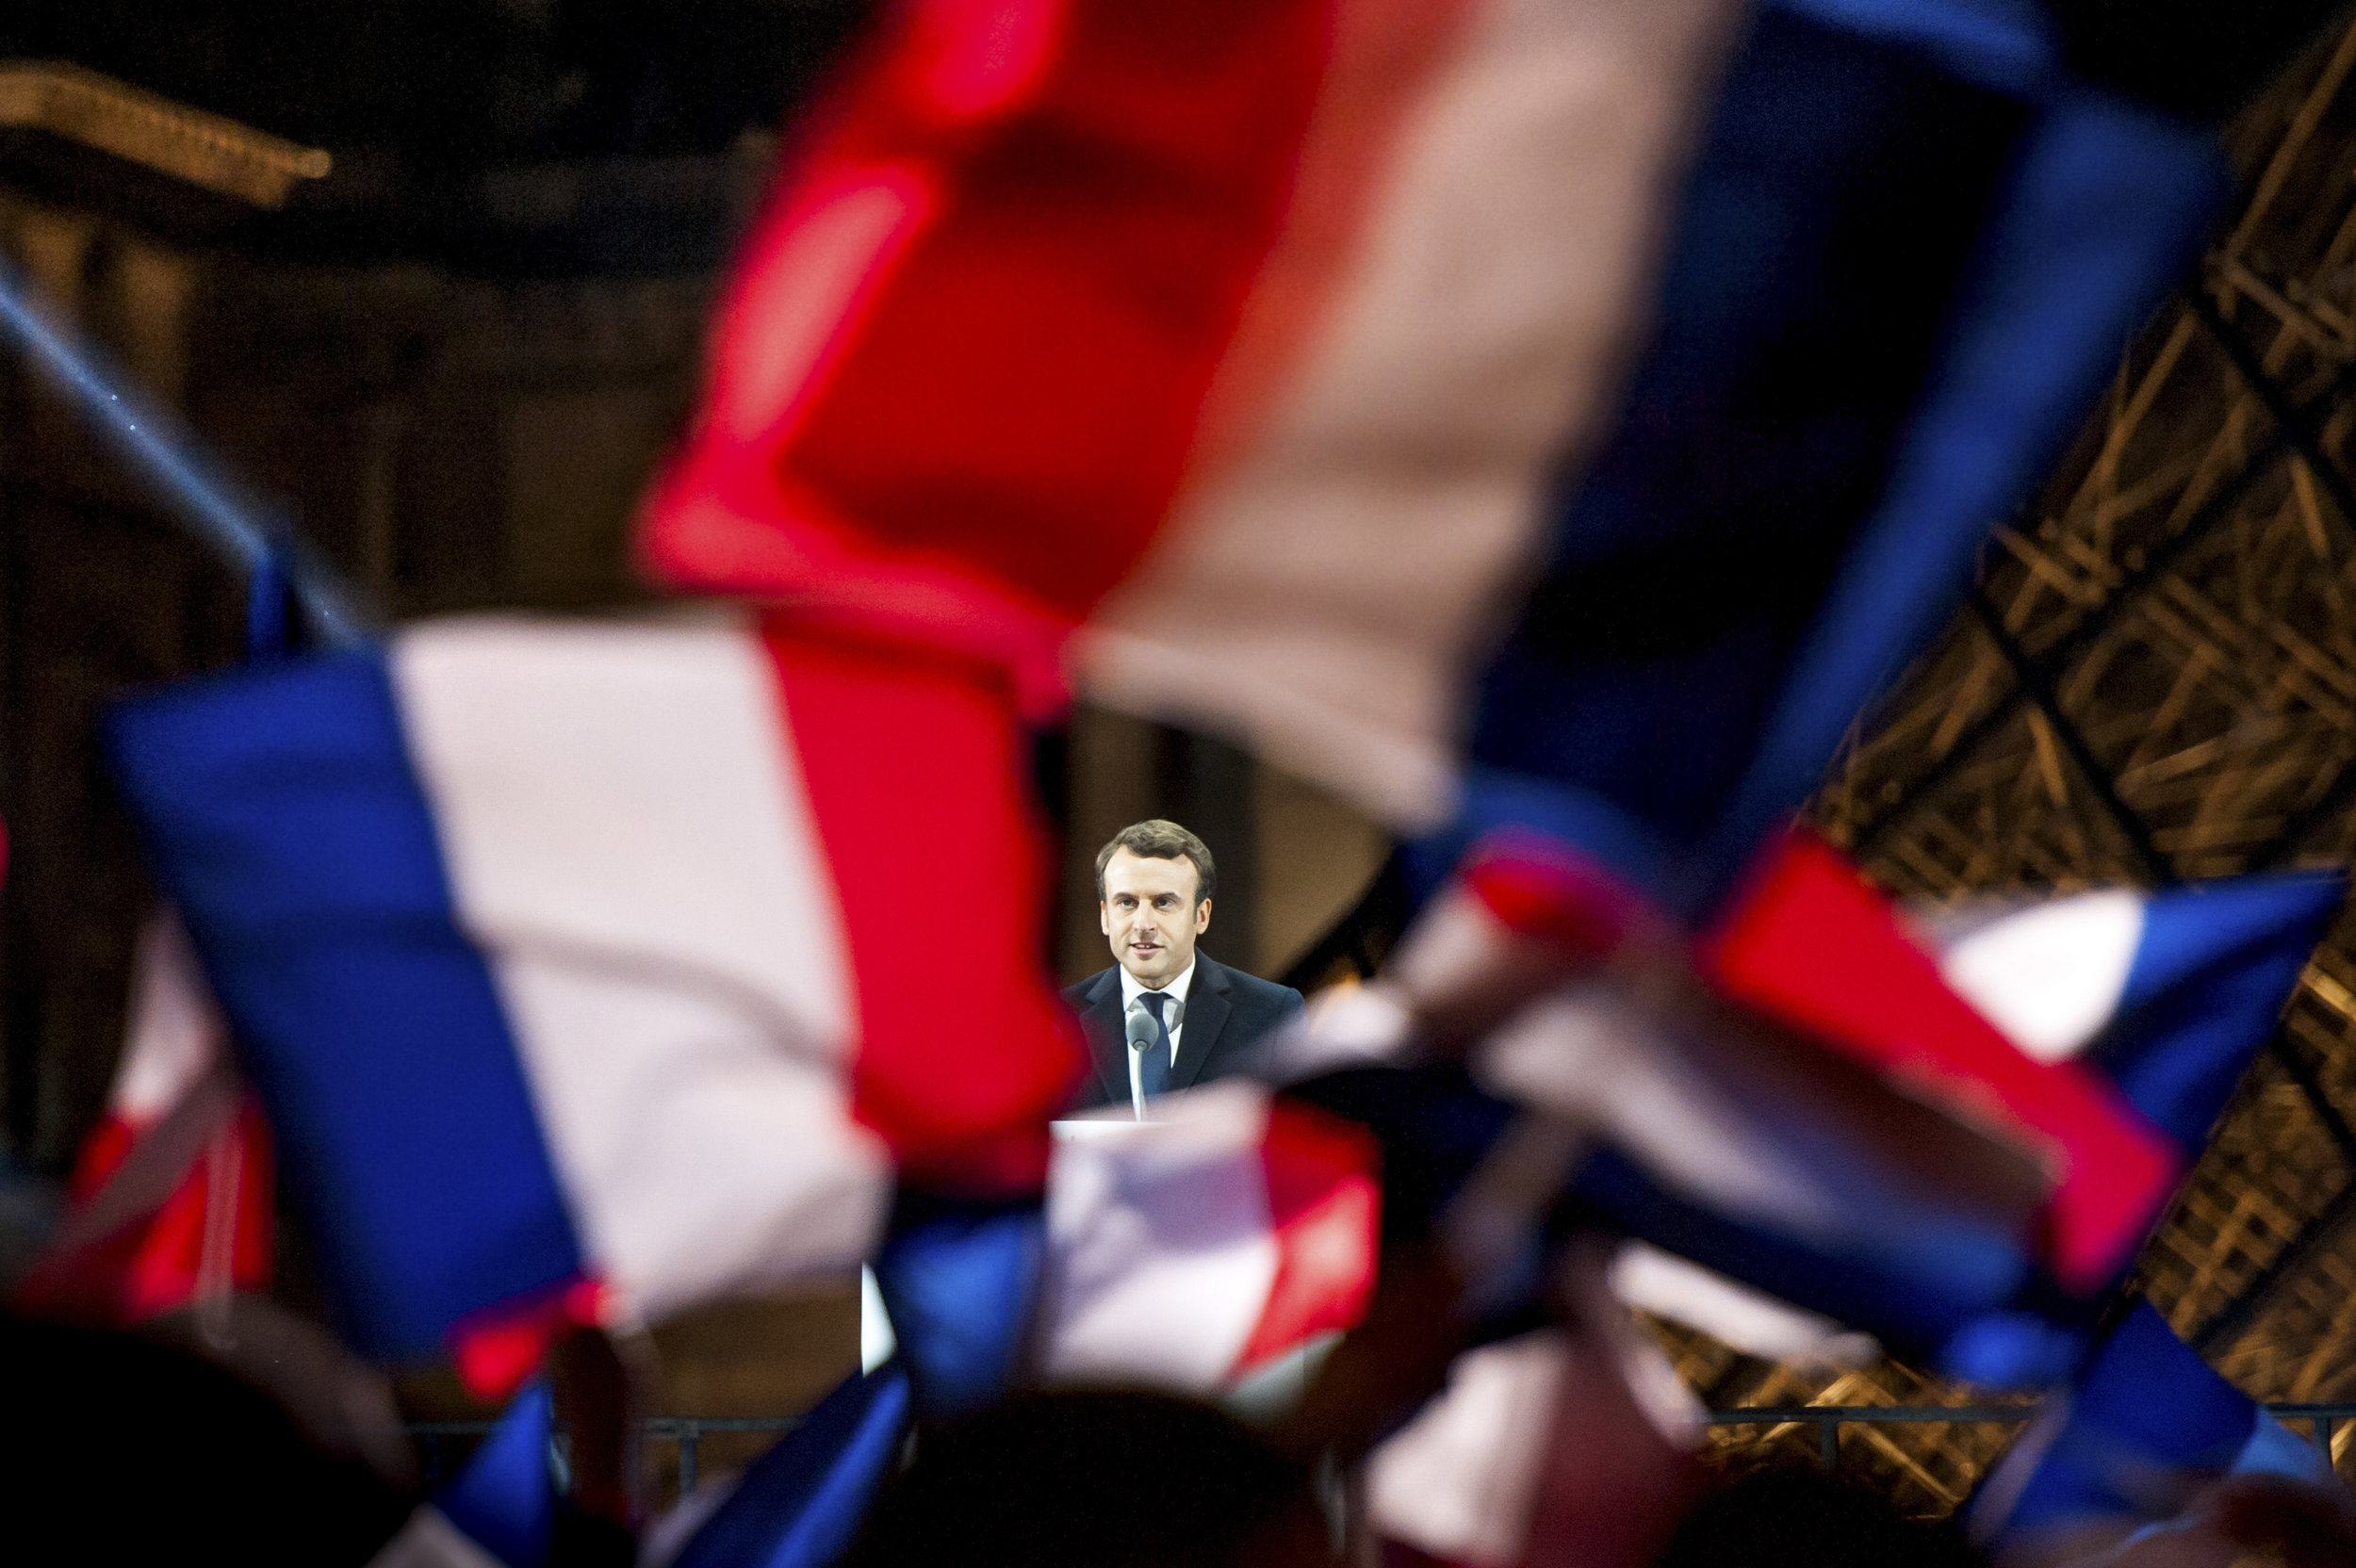 Emmanuel Macron of the newly formed En Marche! Party at a rally at the Louvre having been elected President beating his opponent Marine Le Penn of the Front.Photo by Guilhem Baker  07 May 2017